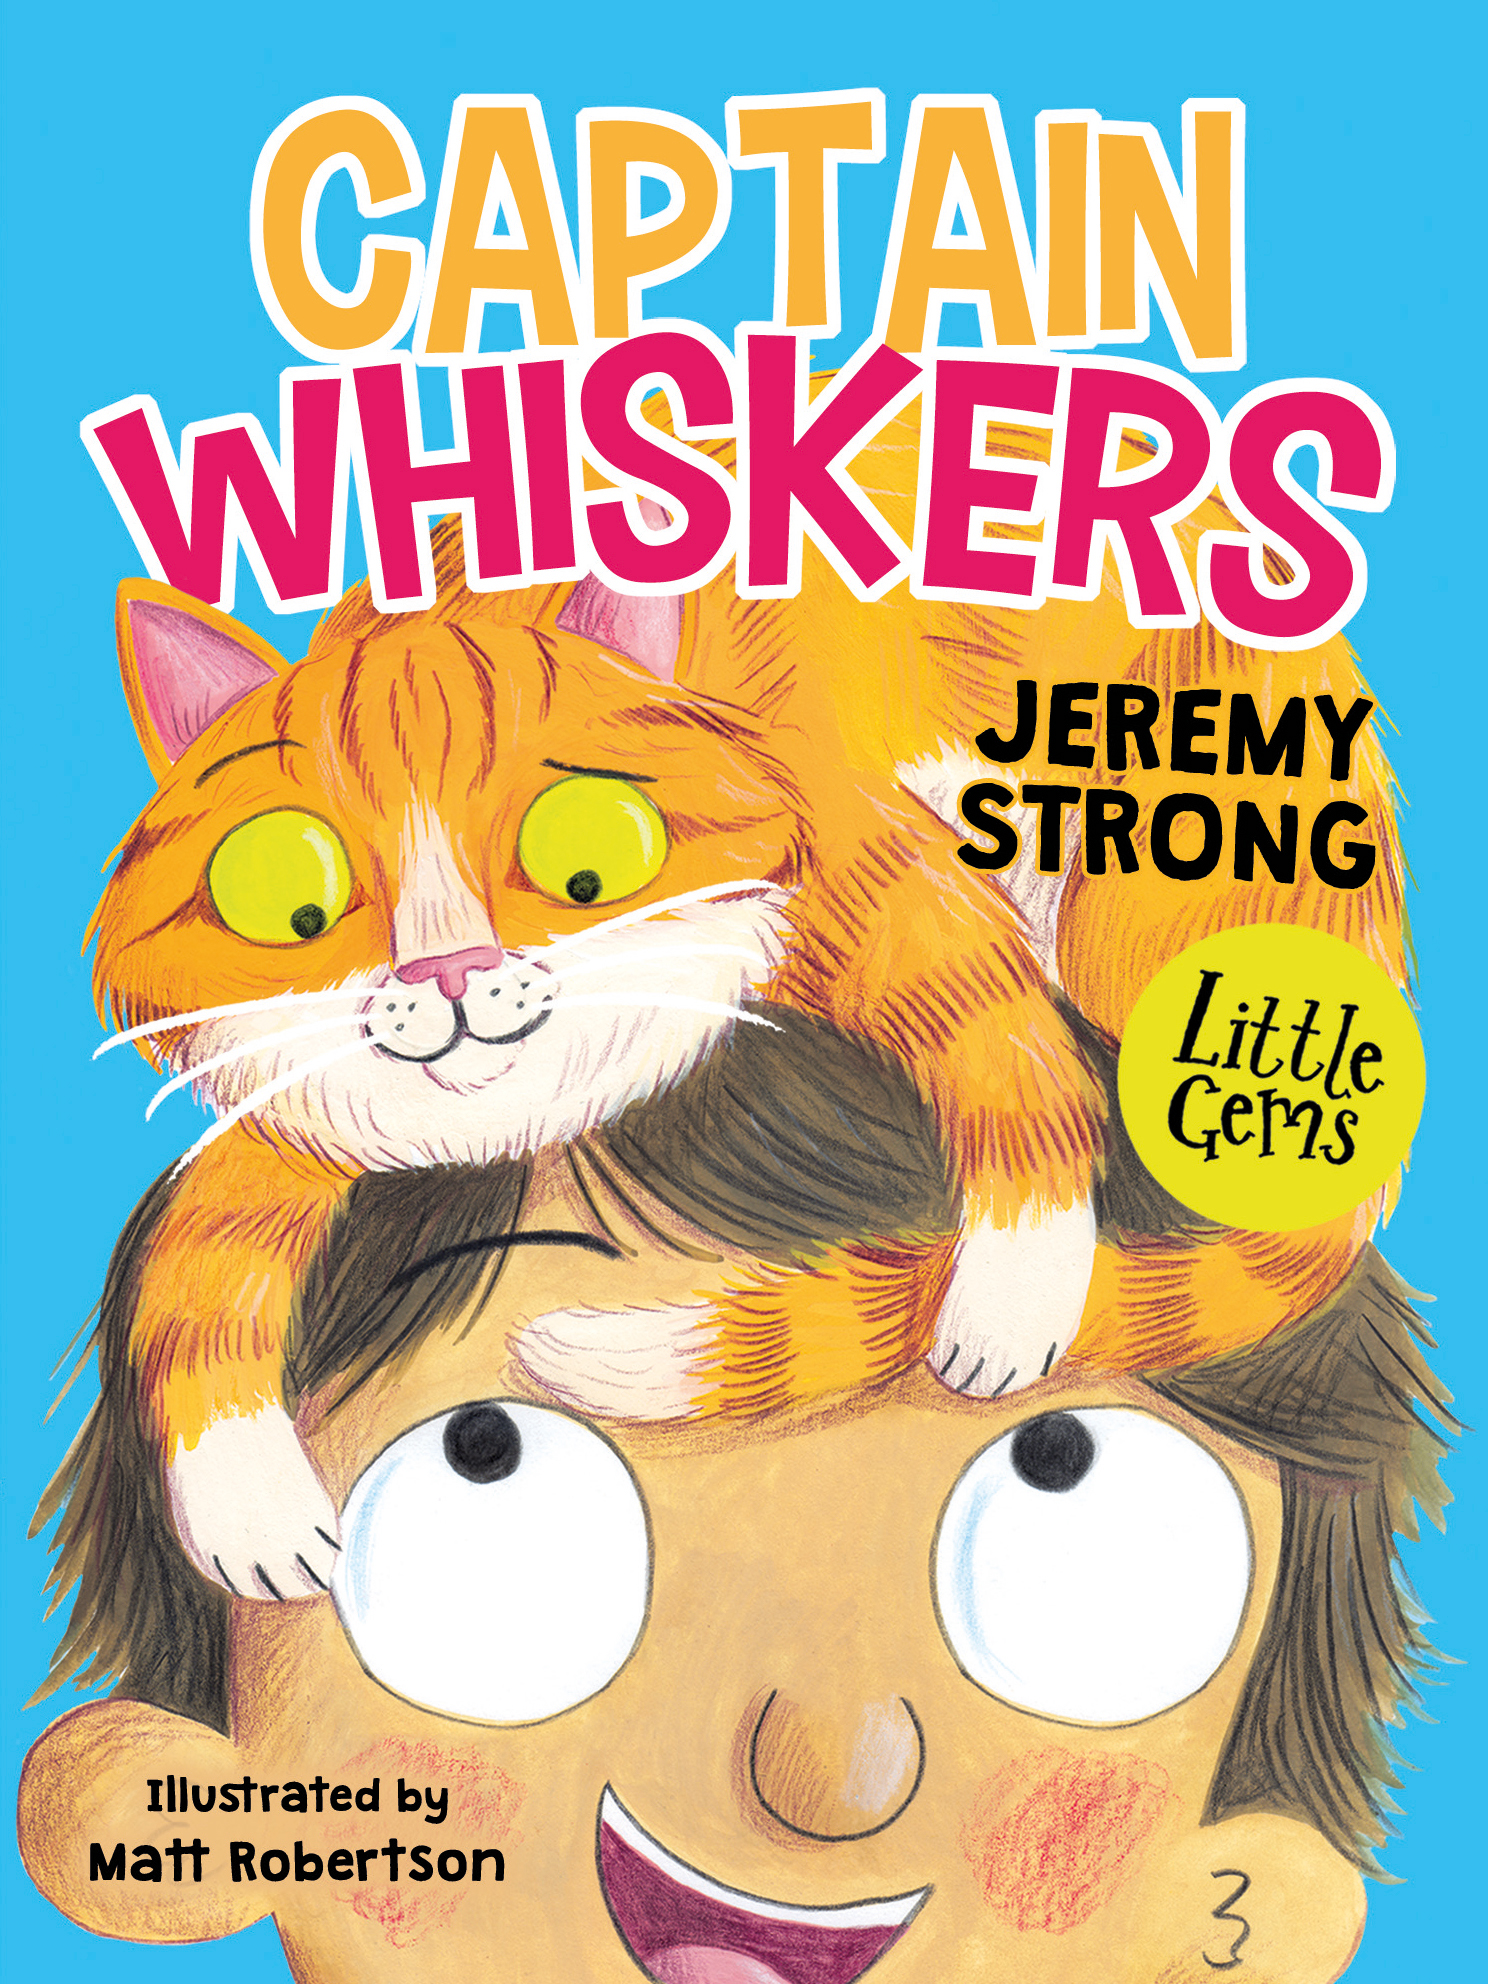 Captain Whiskers by Jeremy Strong - Barrington Stoke